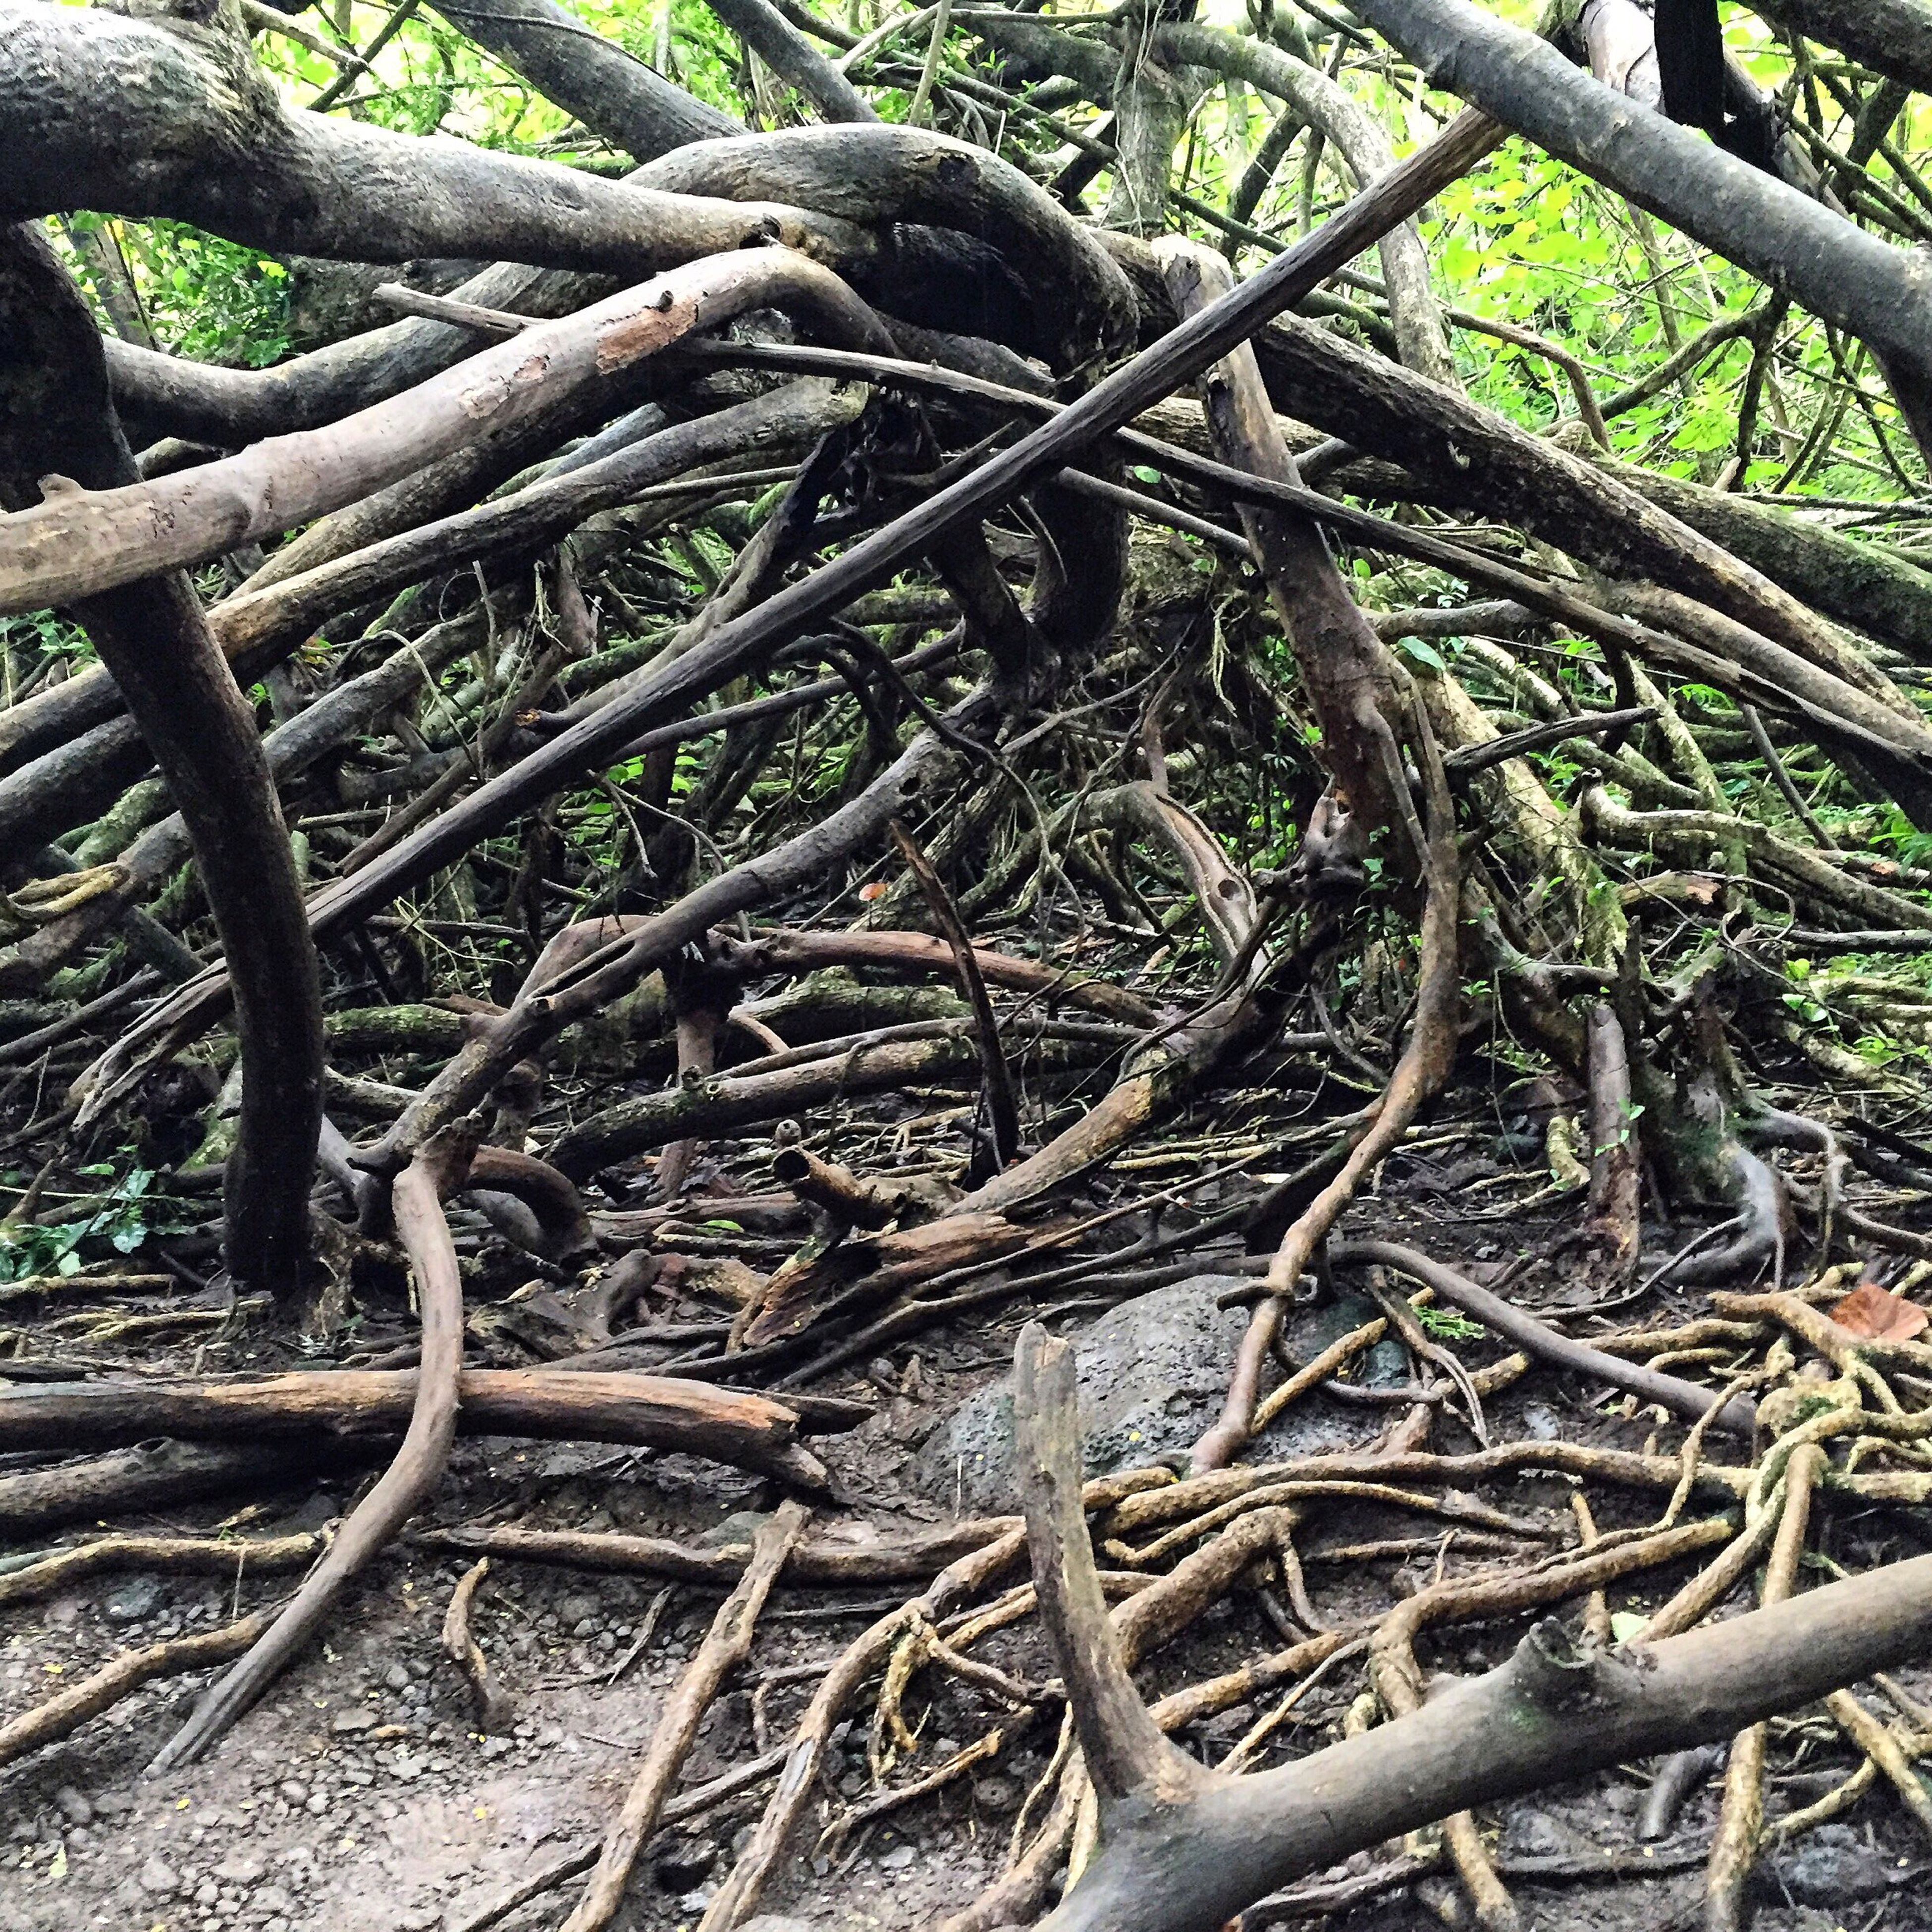 root, branch, close-up, growth, nature, messy, full frame, spreading, tree trunk, twisted, outdoors, dirt, day, woodland, woods, green color, tranquility, no people